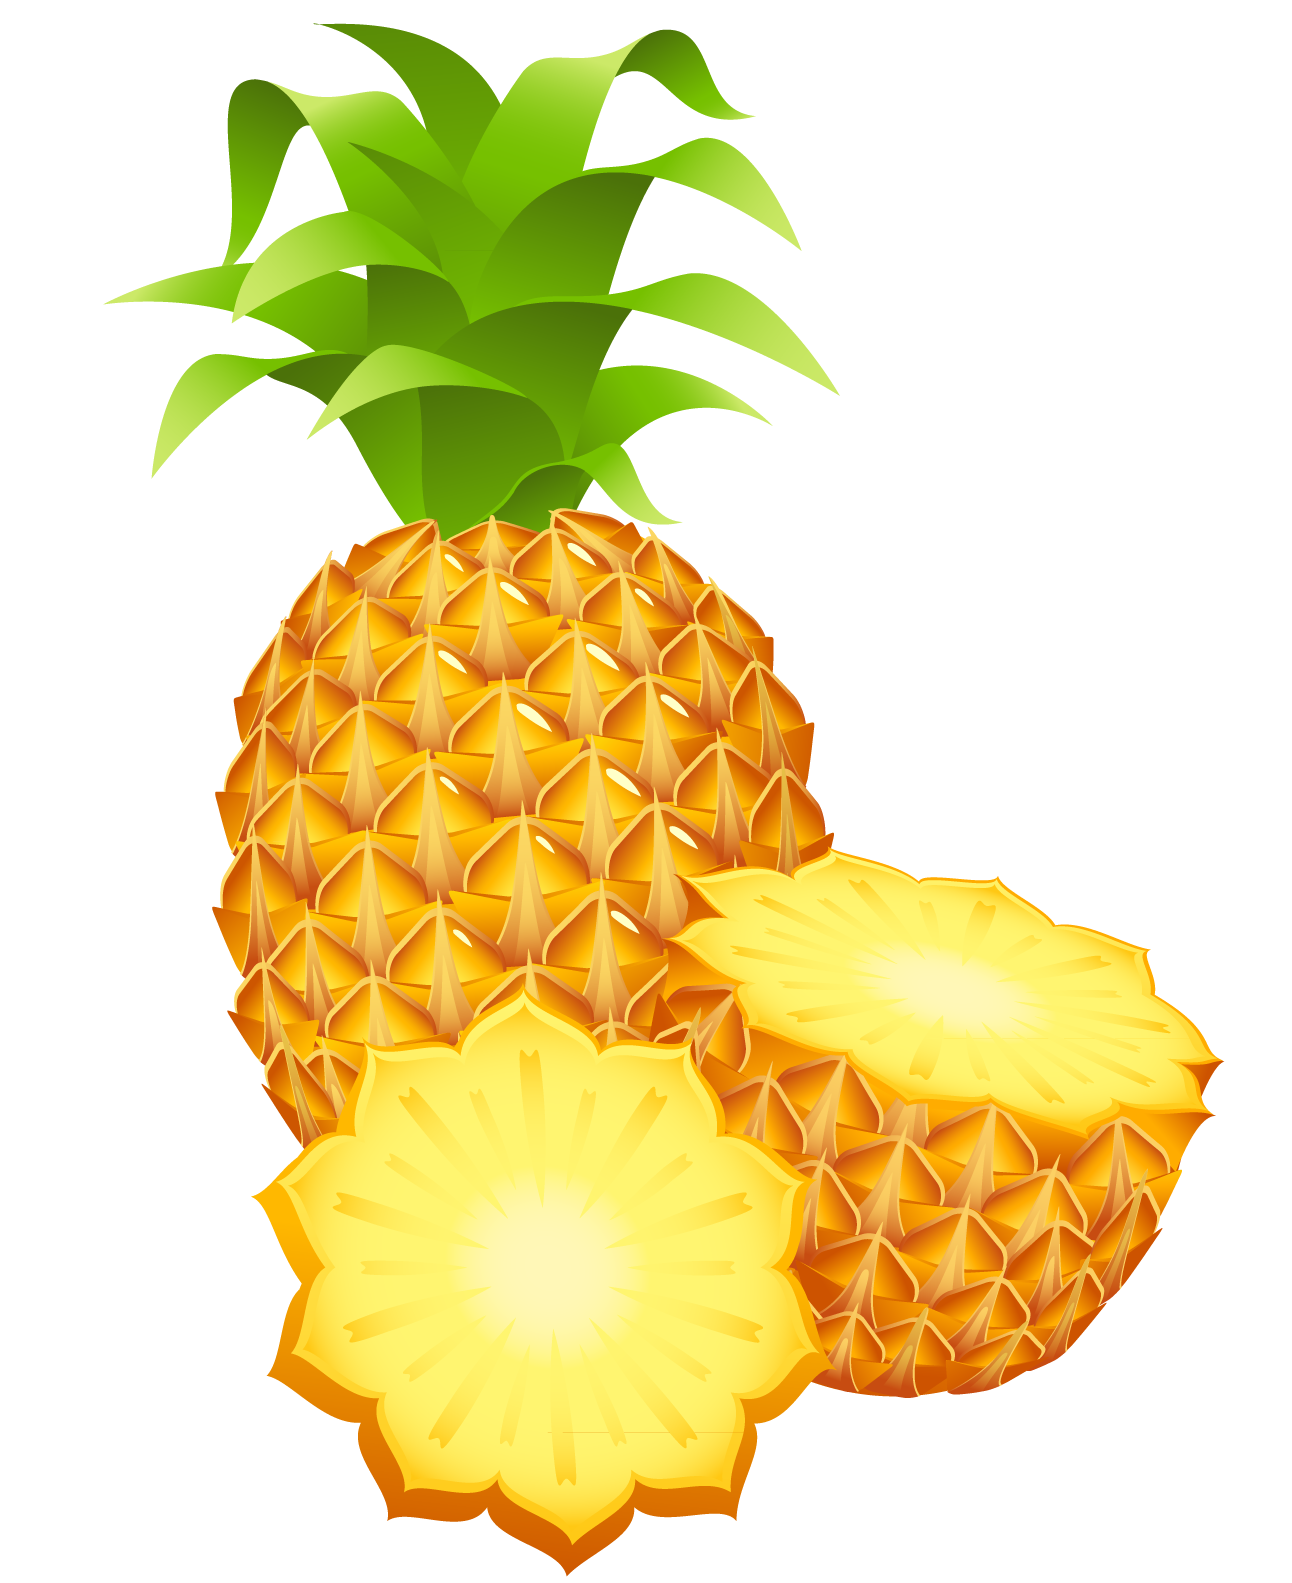 Pineapple PNG Image, Free Download-Pineapple PNG image, free download-8